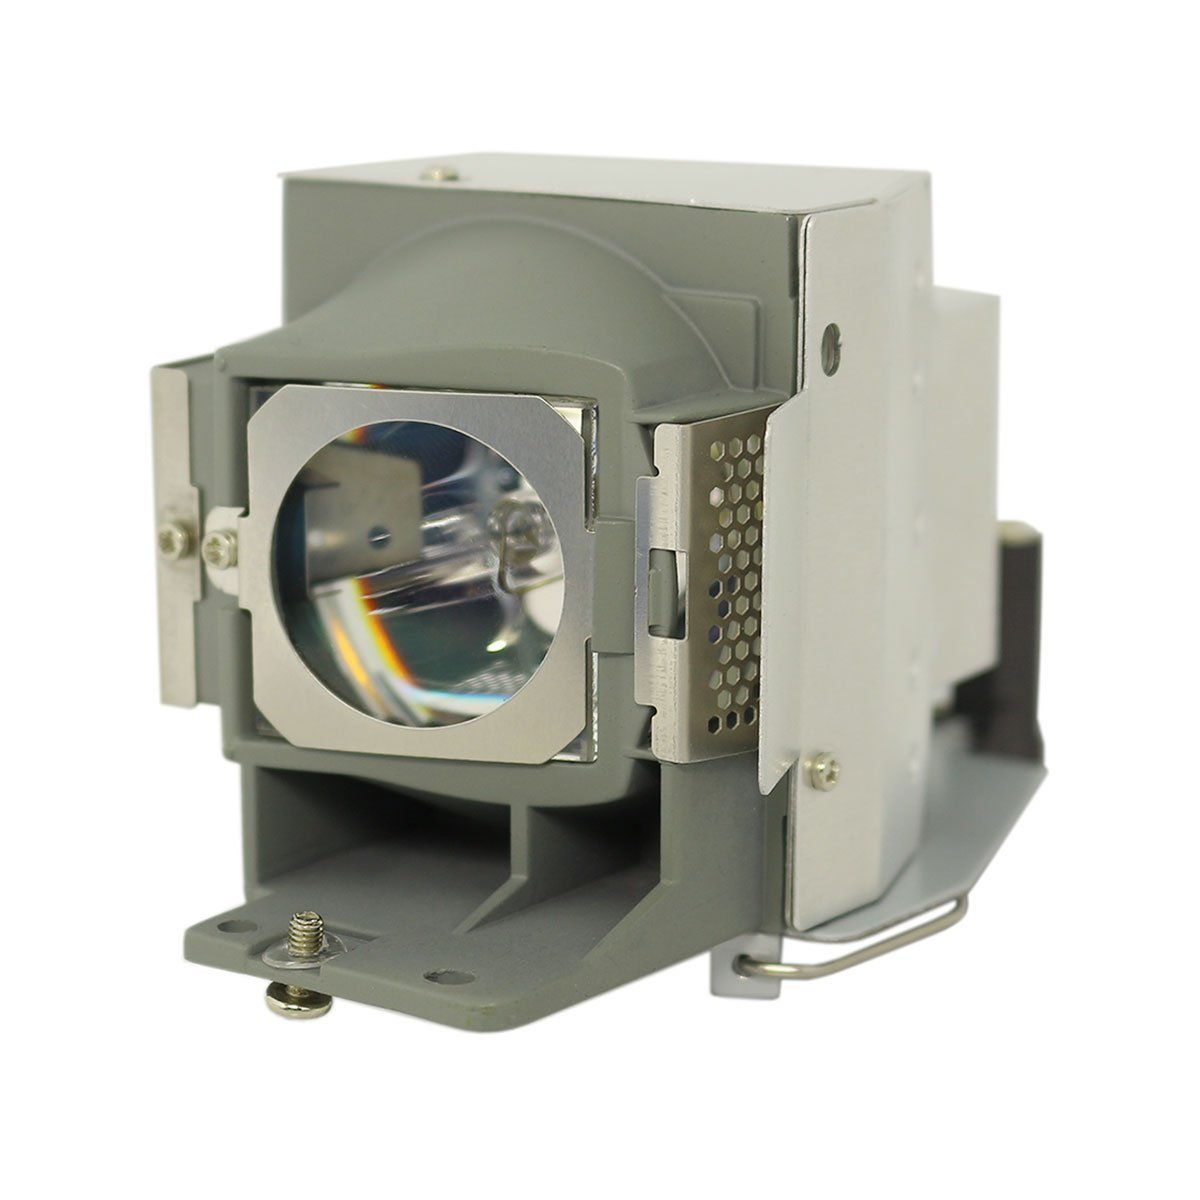 Kingoo Excellent Projector Lamp For VIEWSONIC PJD6213 PJD6223 PJD6223-1W PJD6353 PJD5126-1W Replacement projector Lamp Bulb with Housing